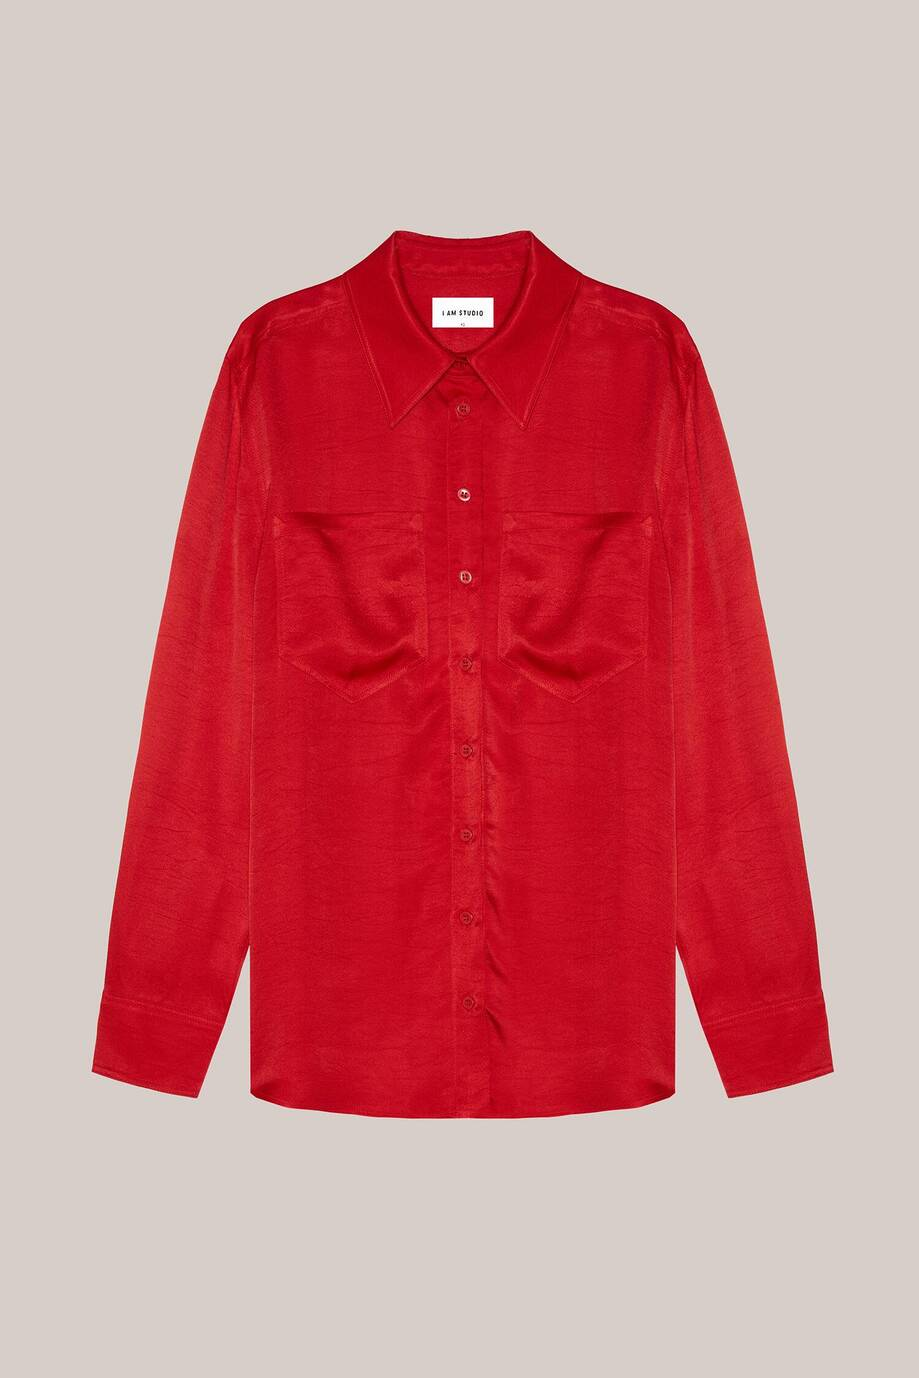 Men's-cut shirt with chest pockets